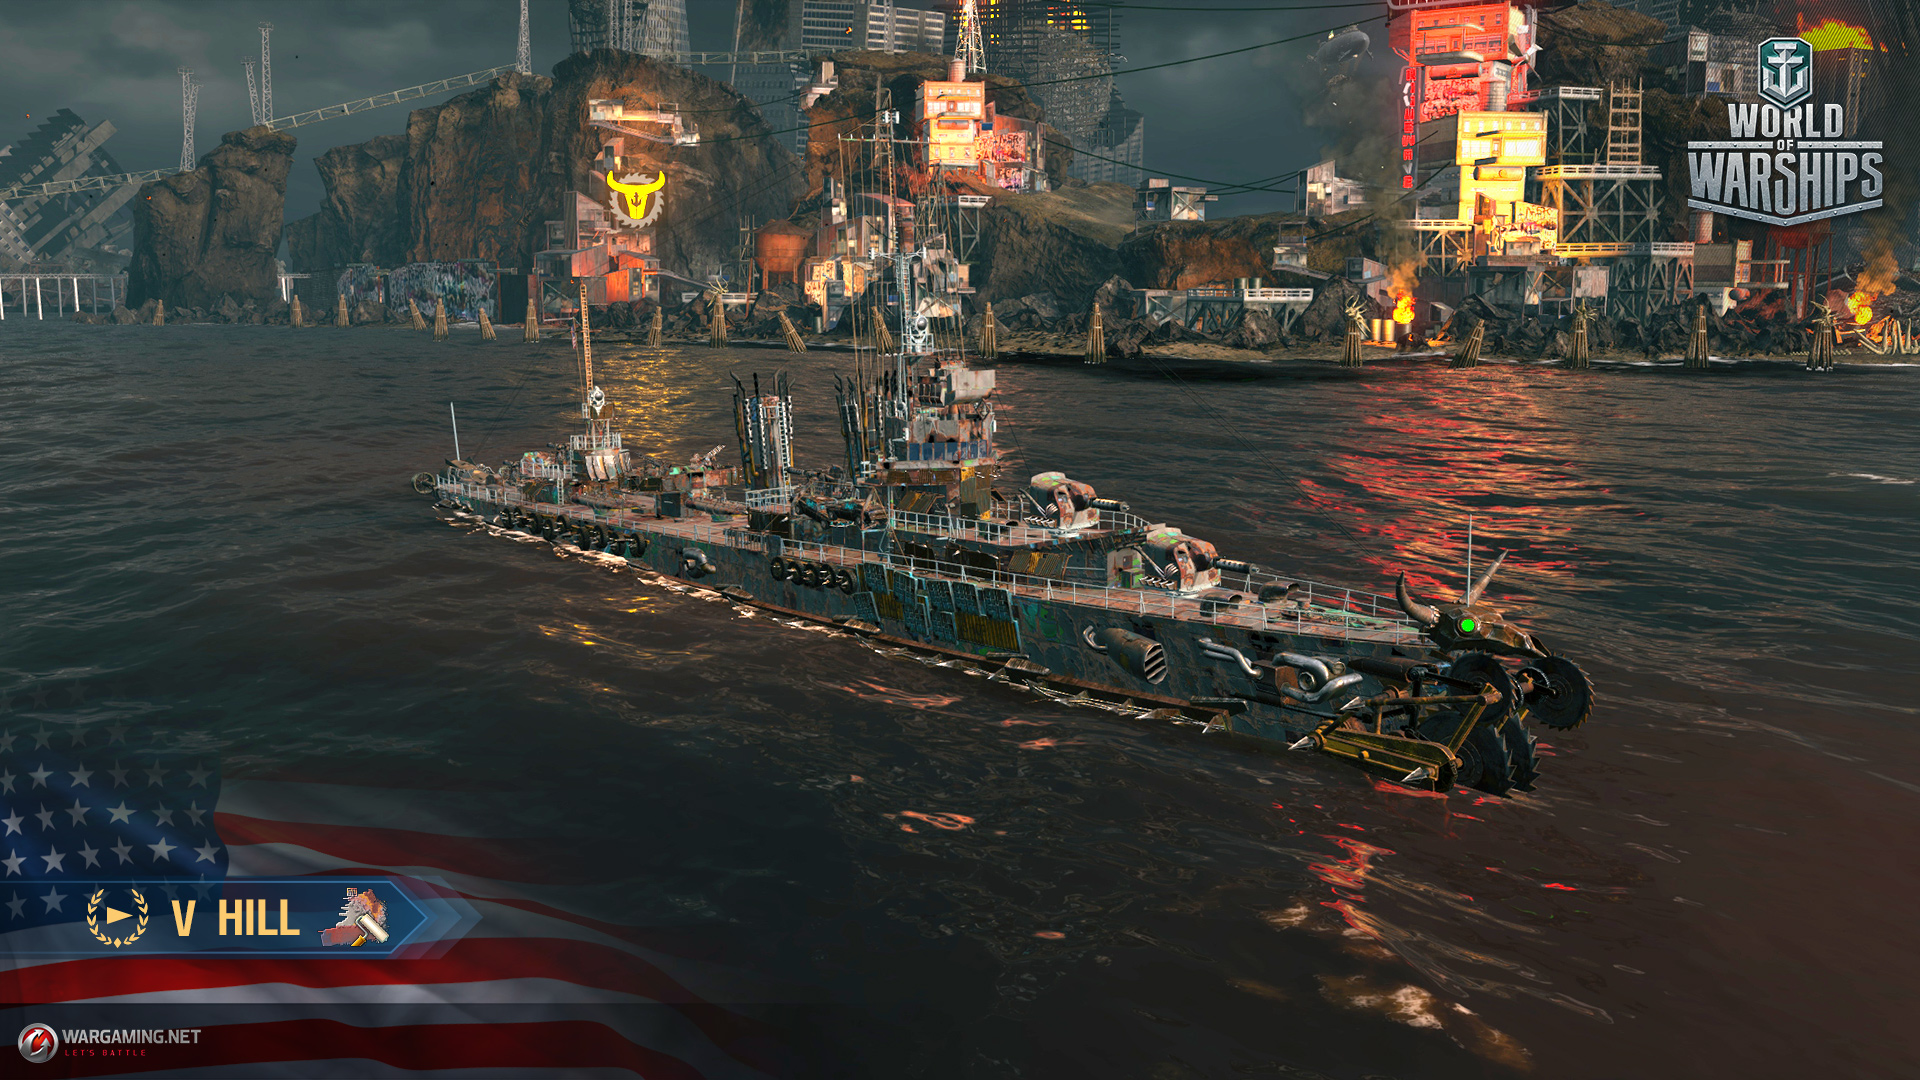 Rogue Wave: The Full Guide | World of Warships